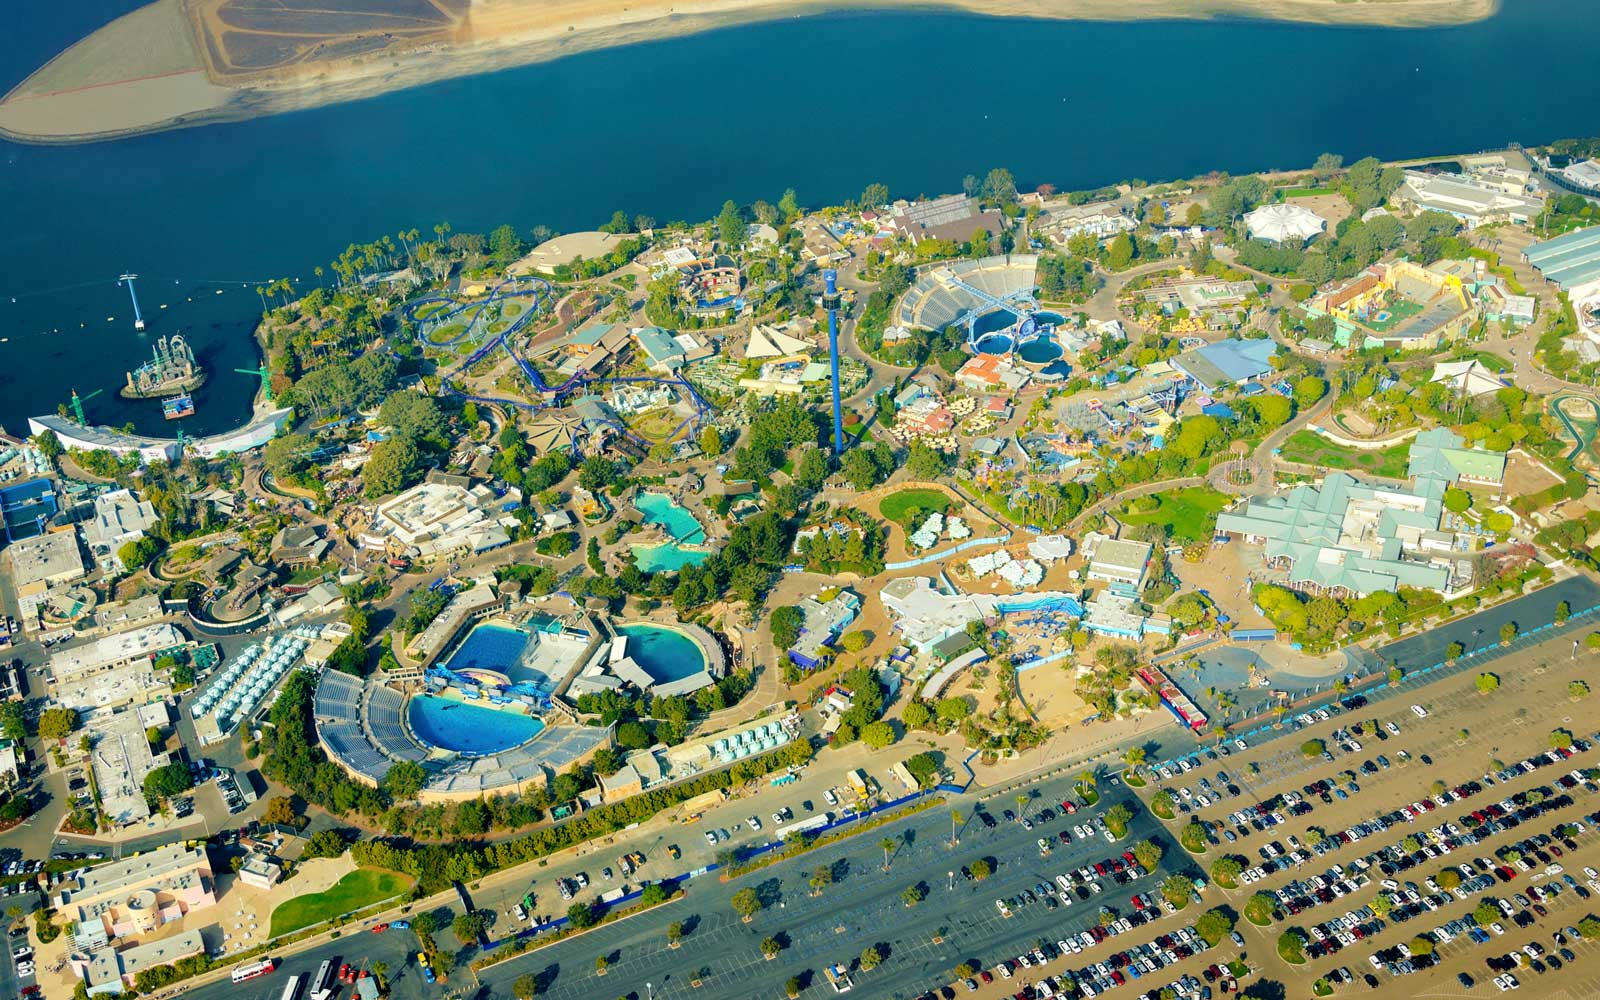 16 People Rescued From Malfunctioning Gondola Ride at SeaWorld San Diego